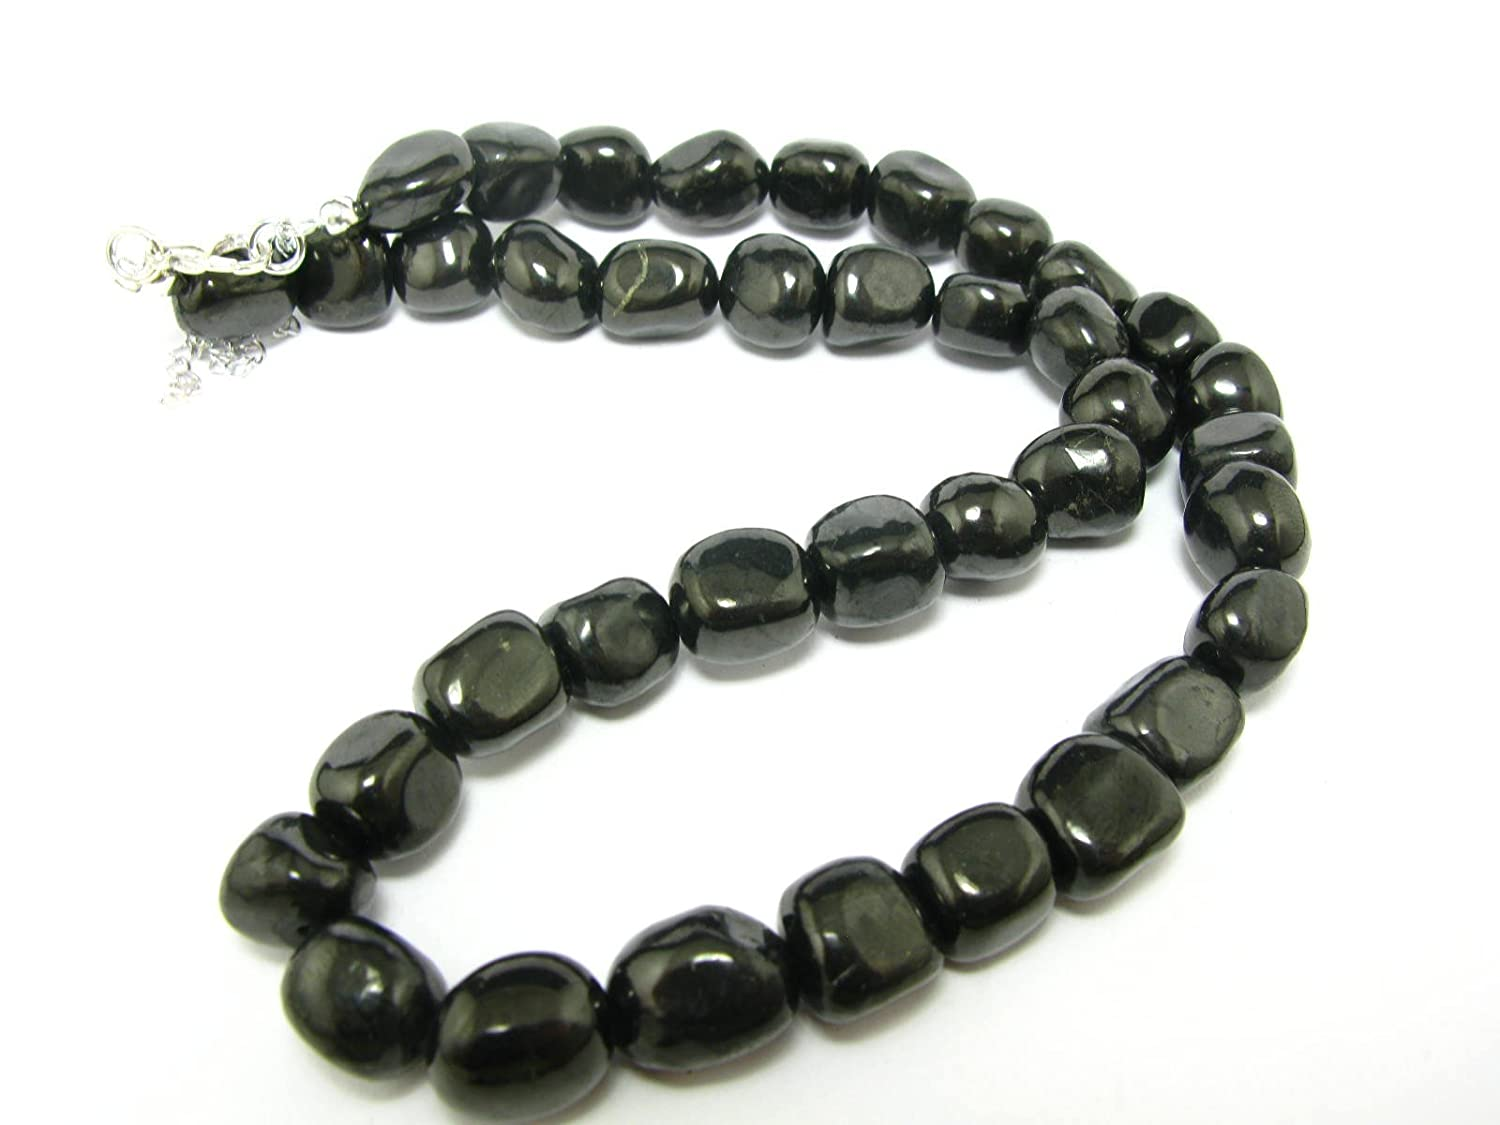 Shungite Necklace Beads From Russia - 10mm Freeform Beads - 19